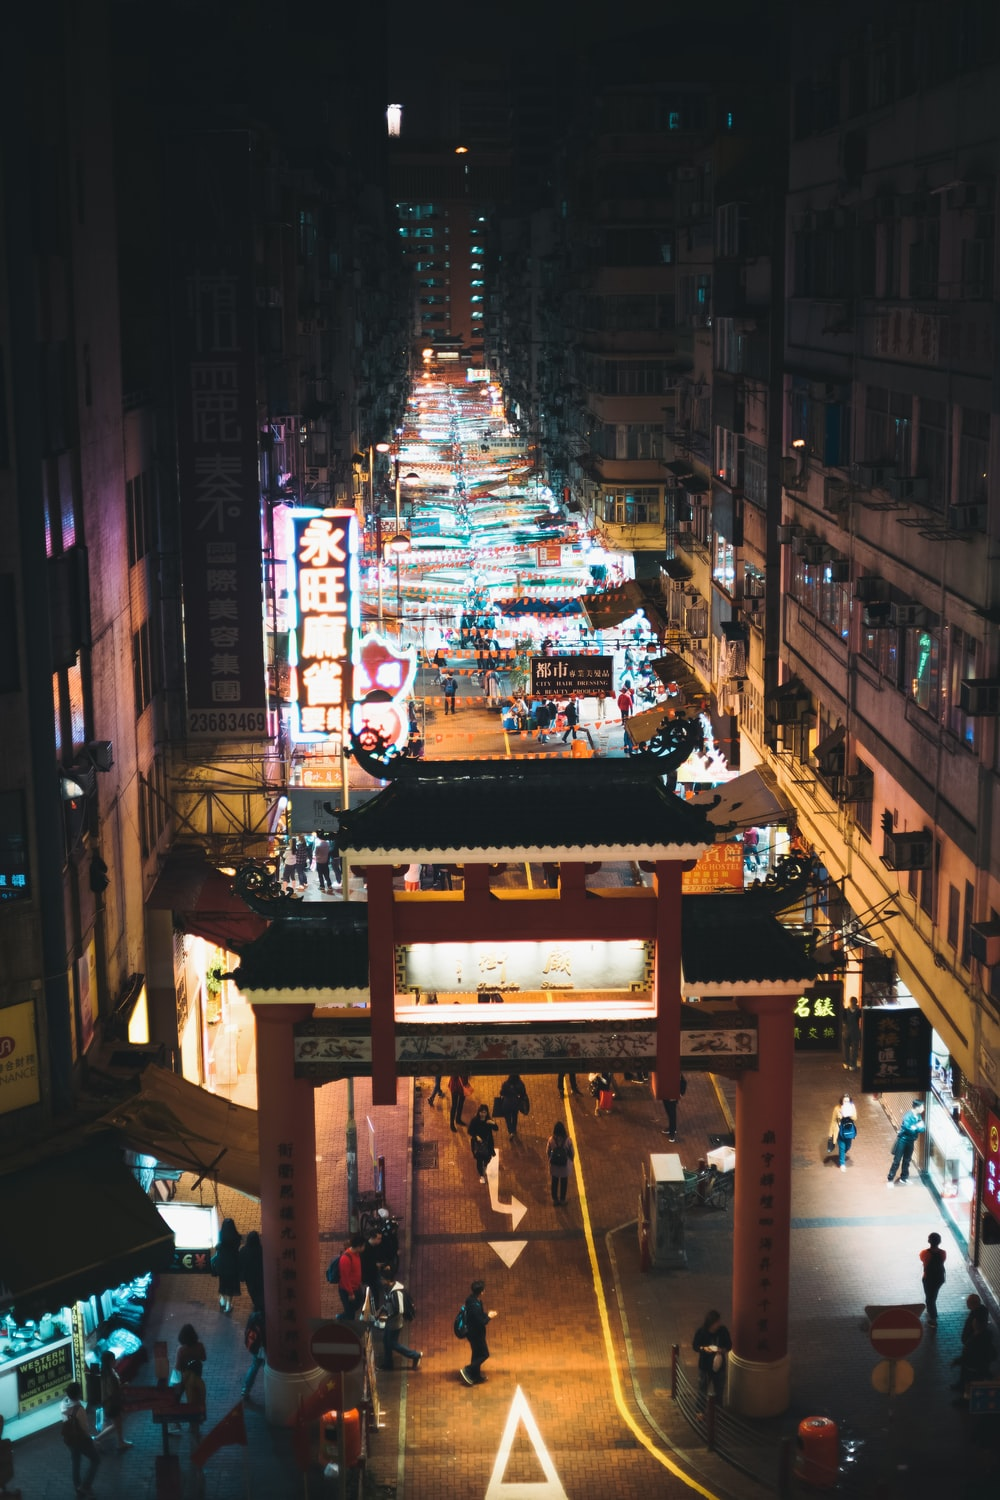 aerial view of building during nighttime